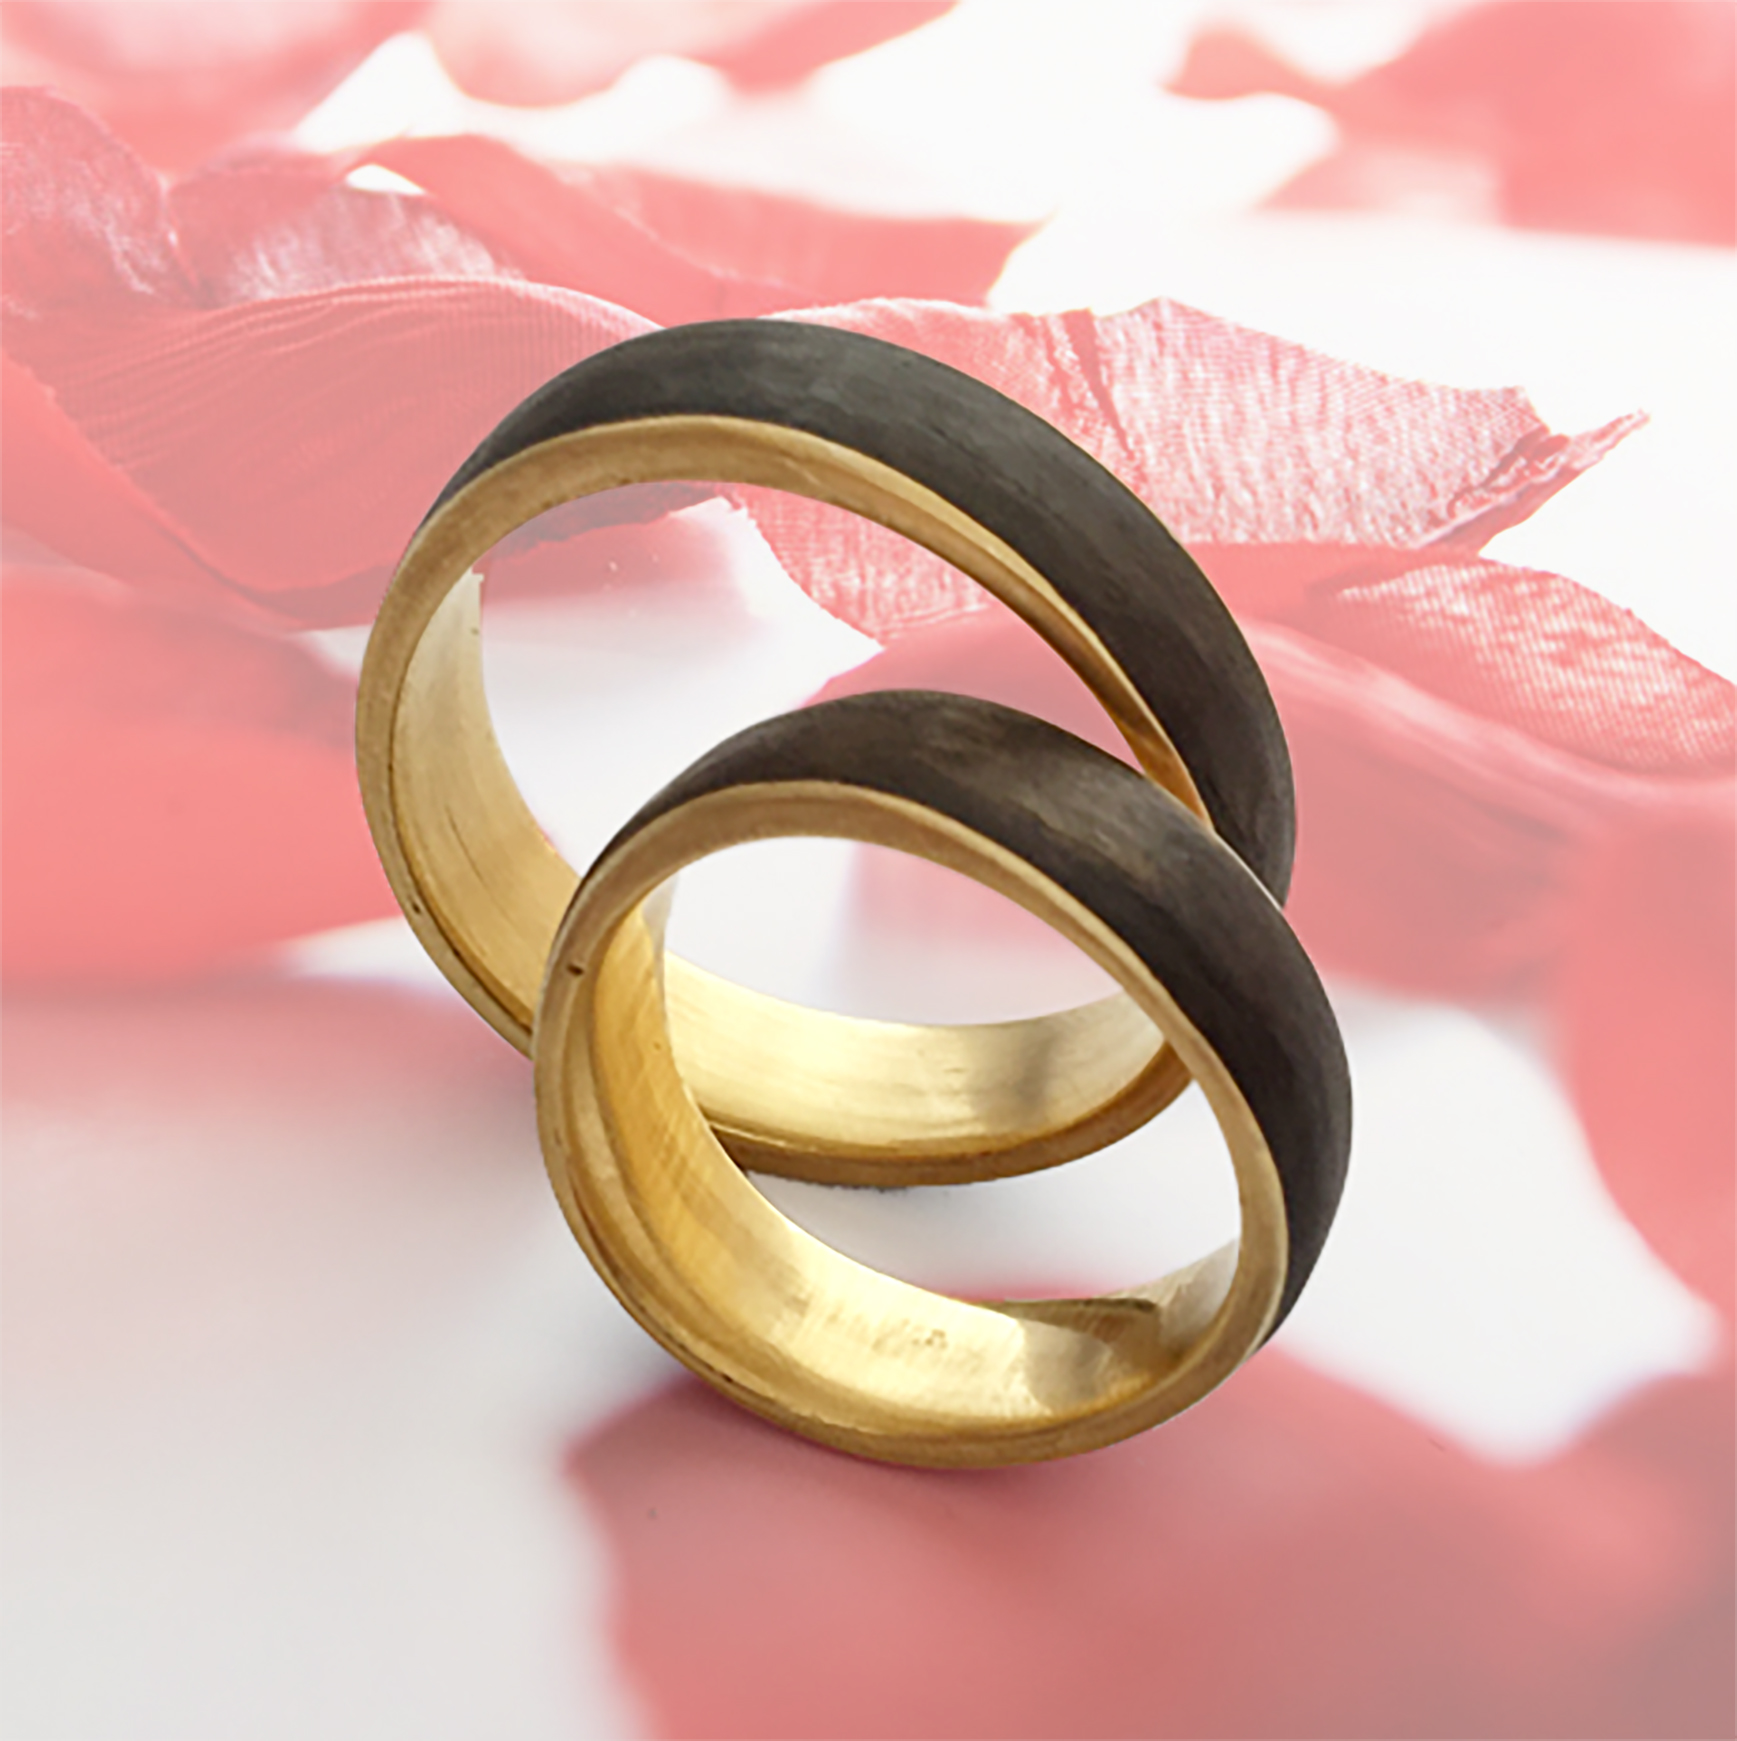 BioWeddingRing - Marriage Harmony - swissharmony.com